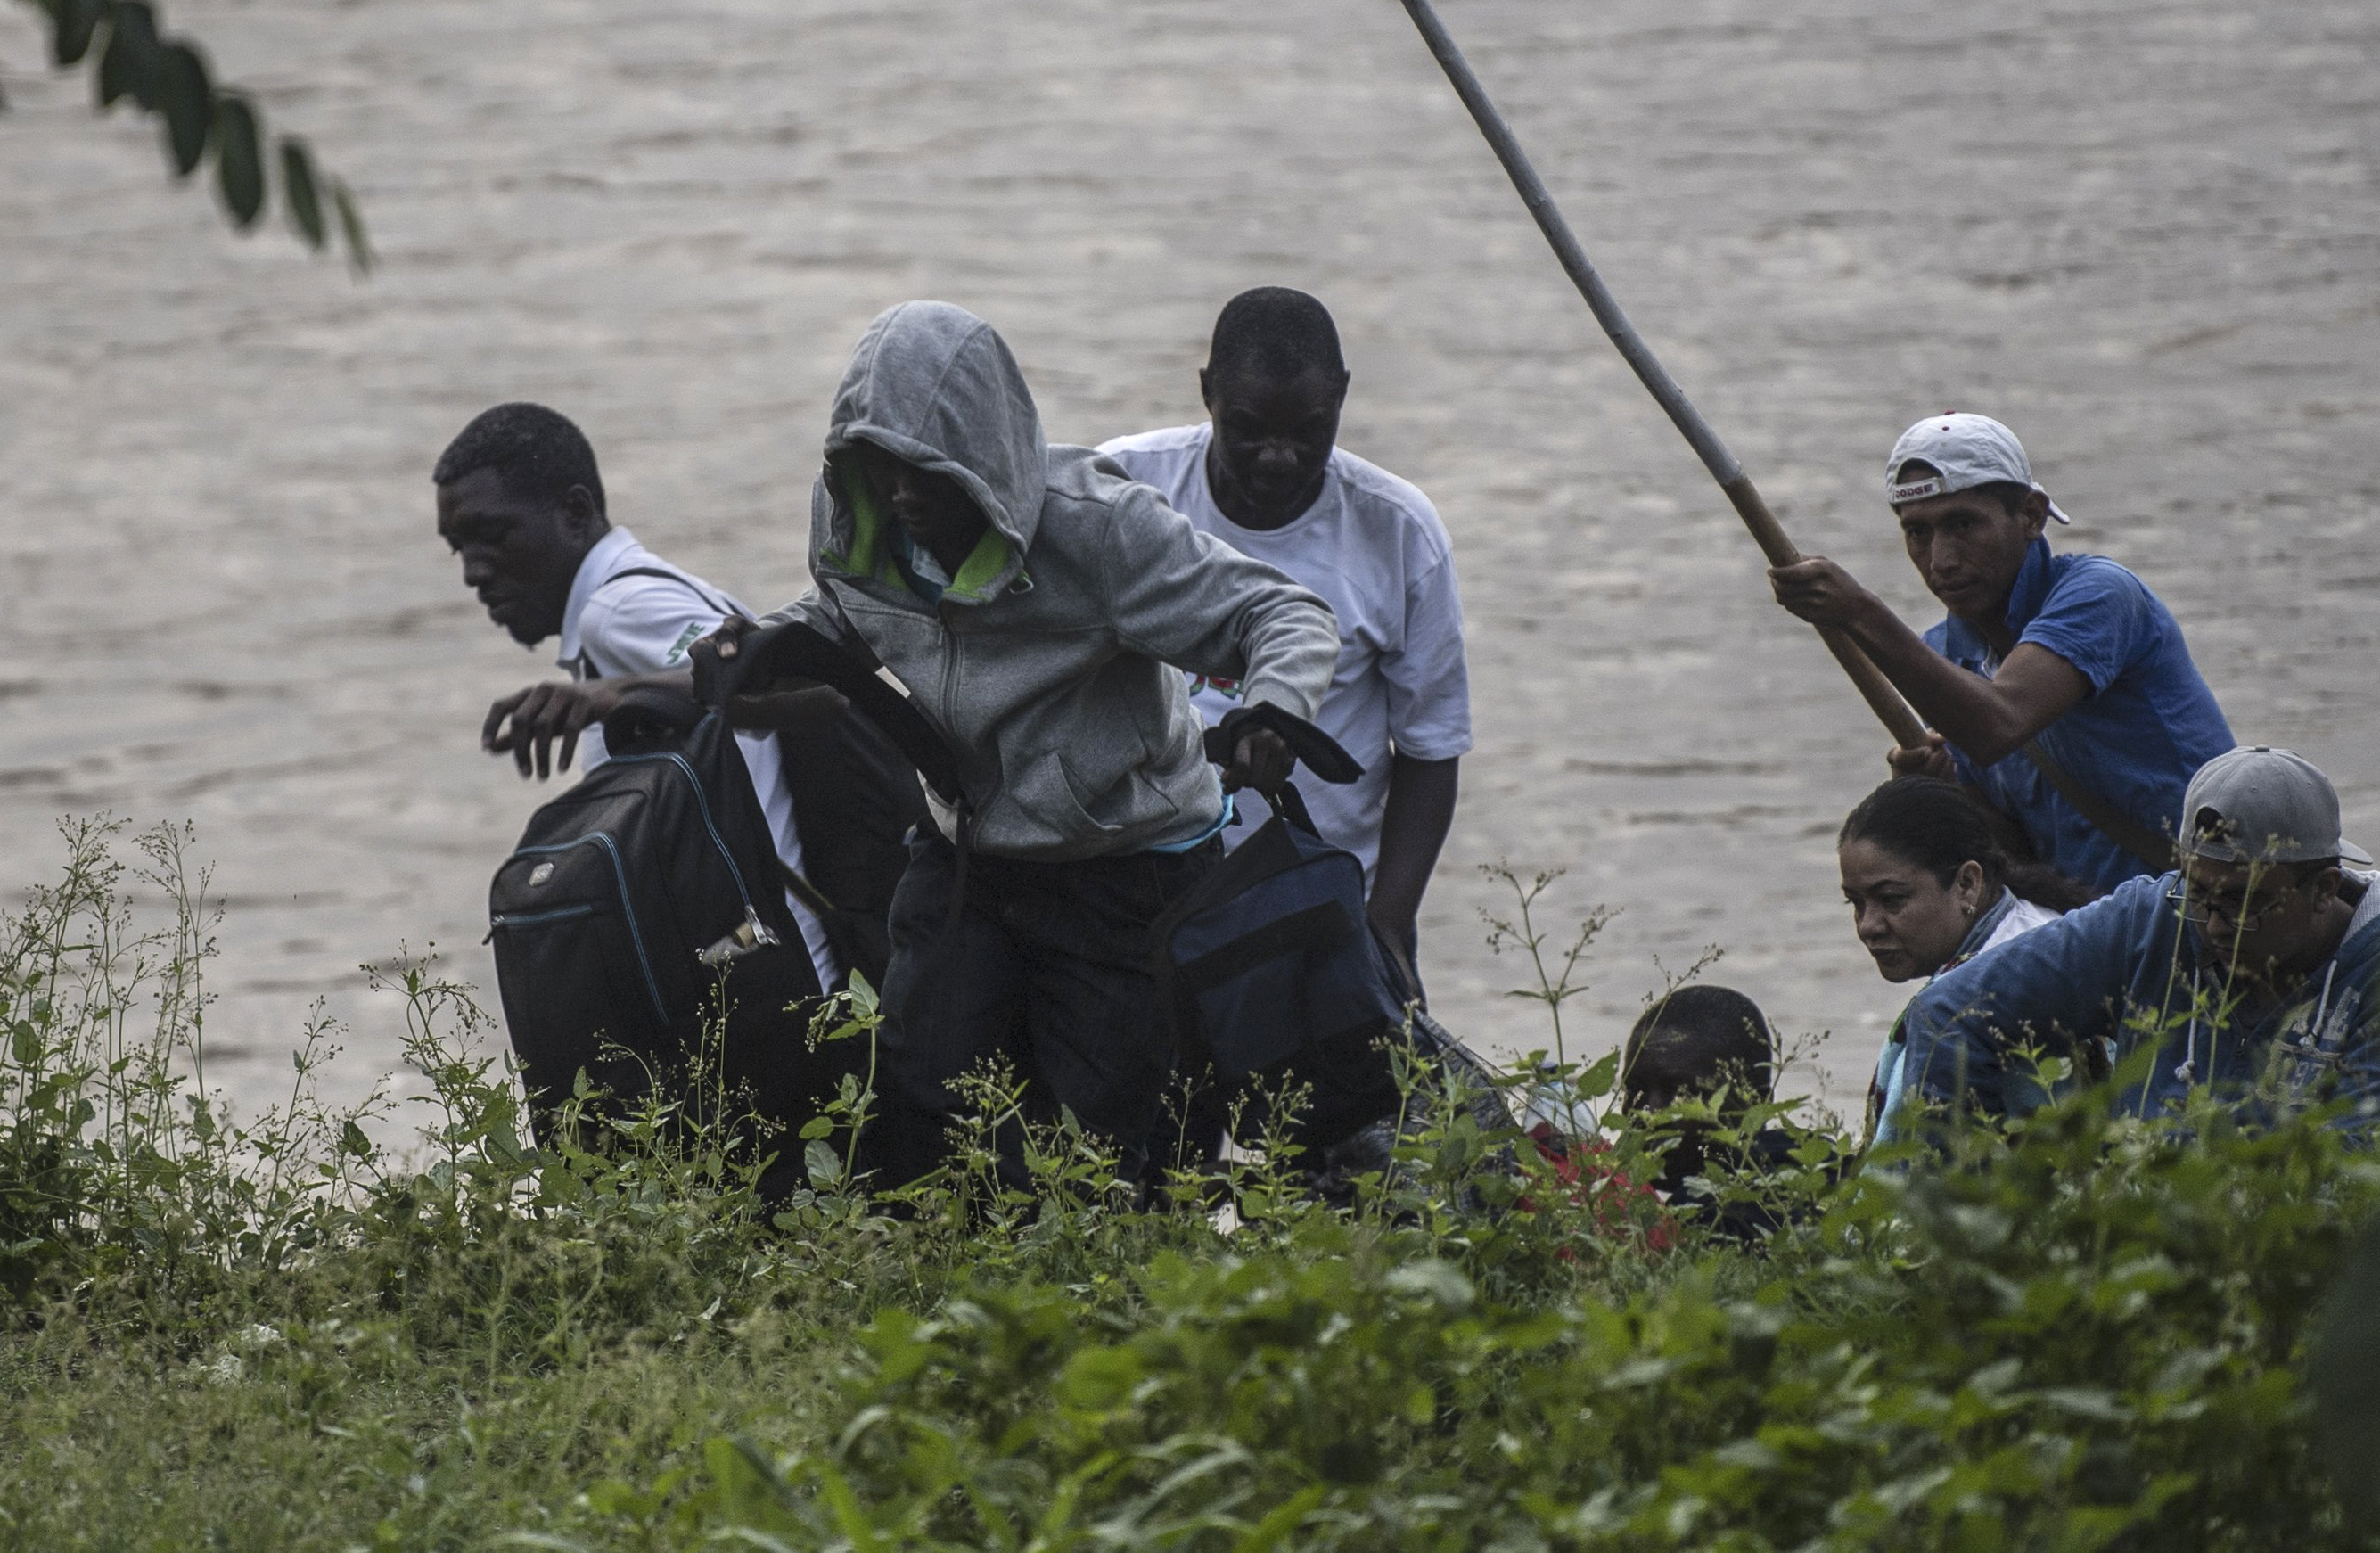 African migrants and locals arrive in Ciudad Hidalgo in Chiapas State, Mexico, after illegally crossing the Suchiate river from Tecun Uman in Guatemala on a makeshift raft, on June 10, 2019. - In the framework of Mexico's deal to curb migration in order to avert US President Donald Trump's threat of tariffs, Mexico's Foreign Minister Marcelo Ebrard said Mexico will discuss a